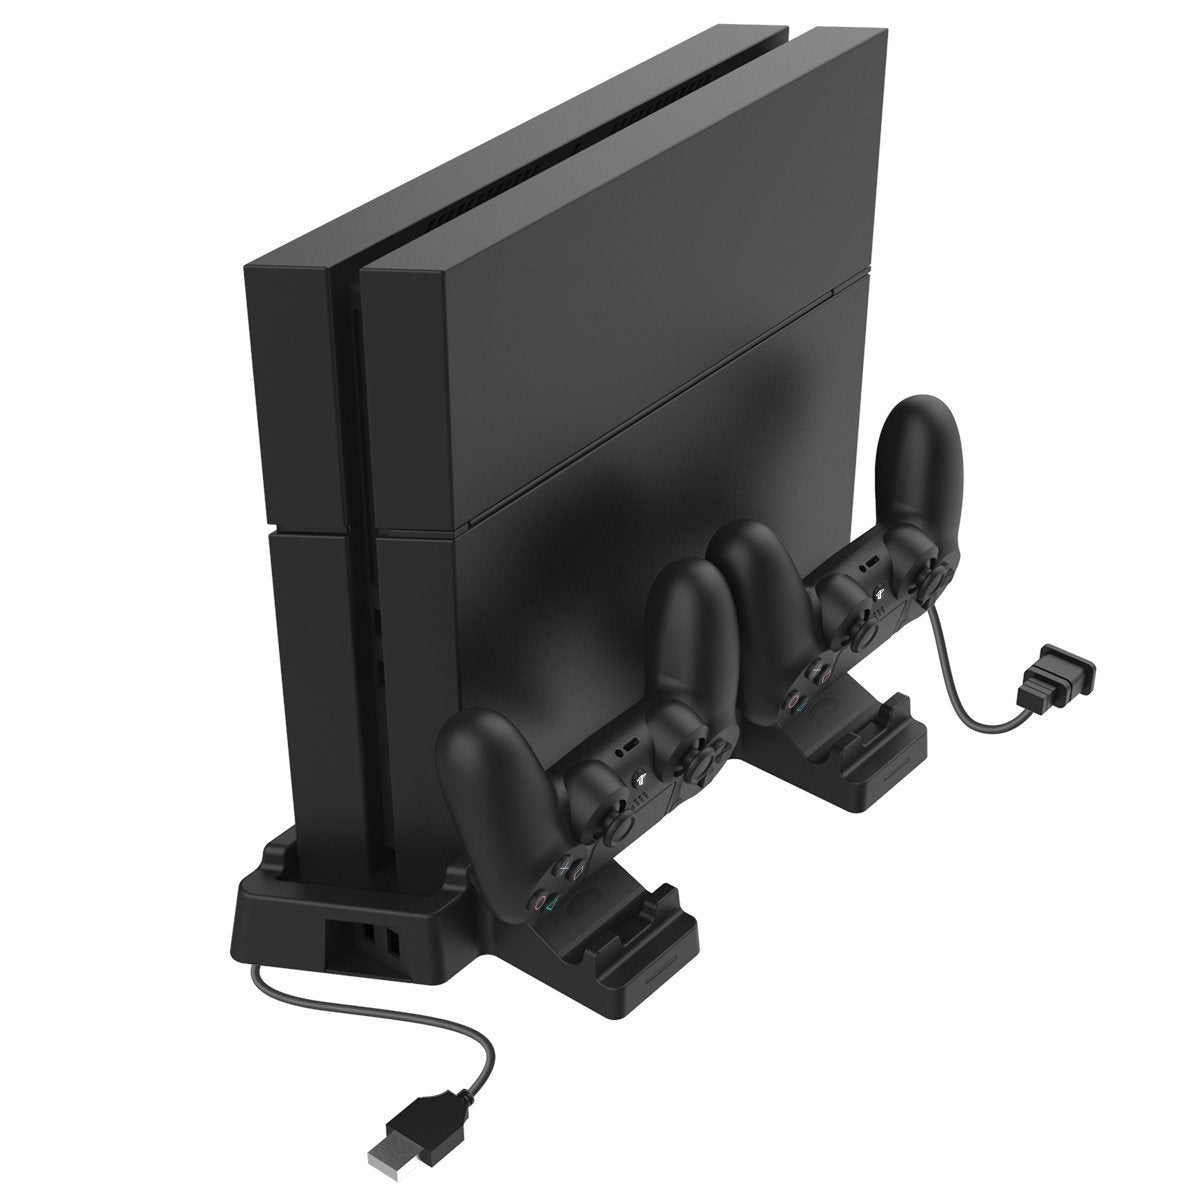 GameSir Cooling Stand Dual Controller Charging Station Dock for PS4 Pro / Slim